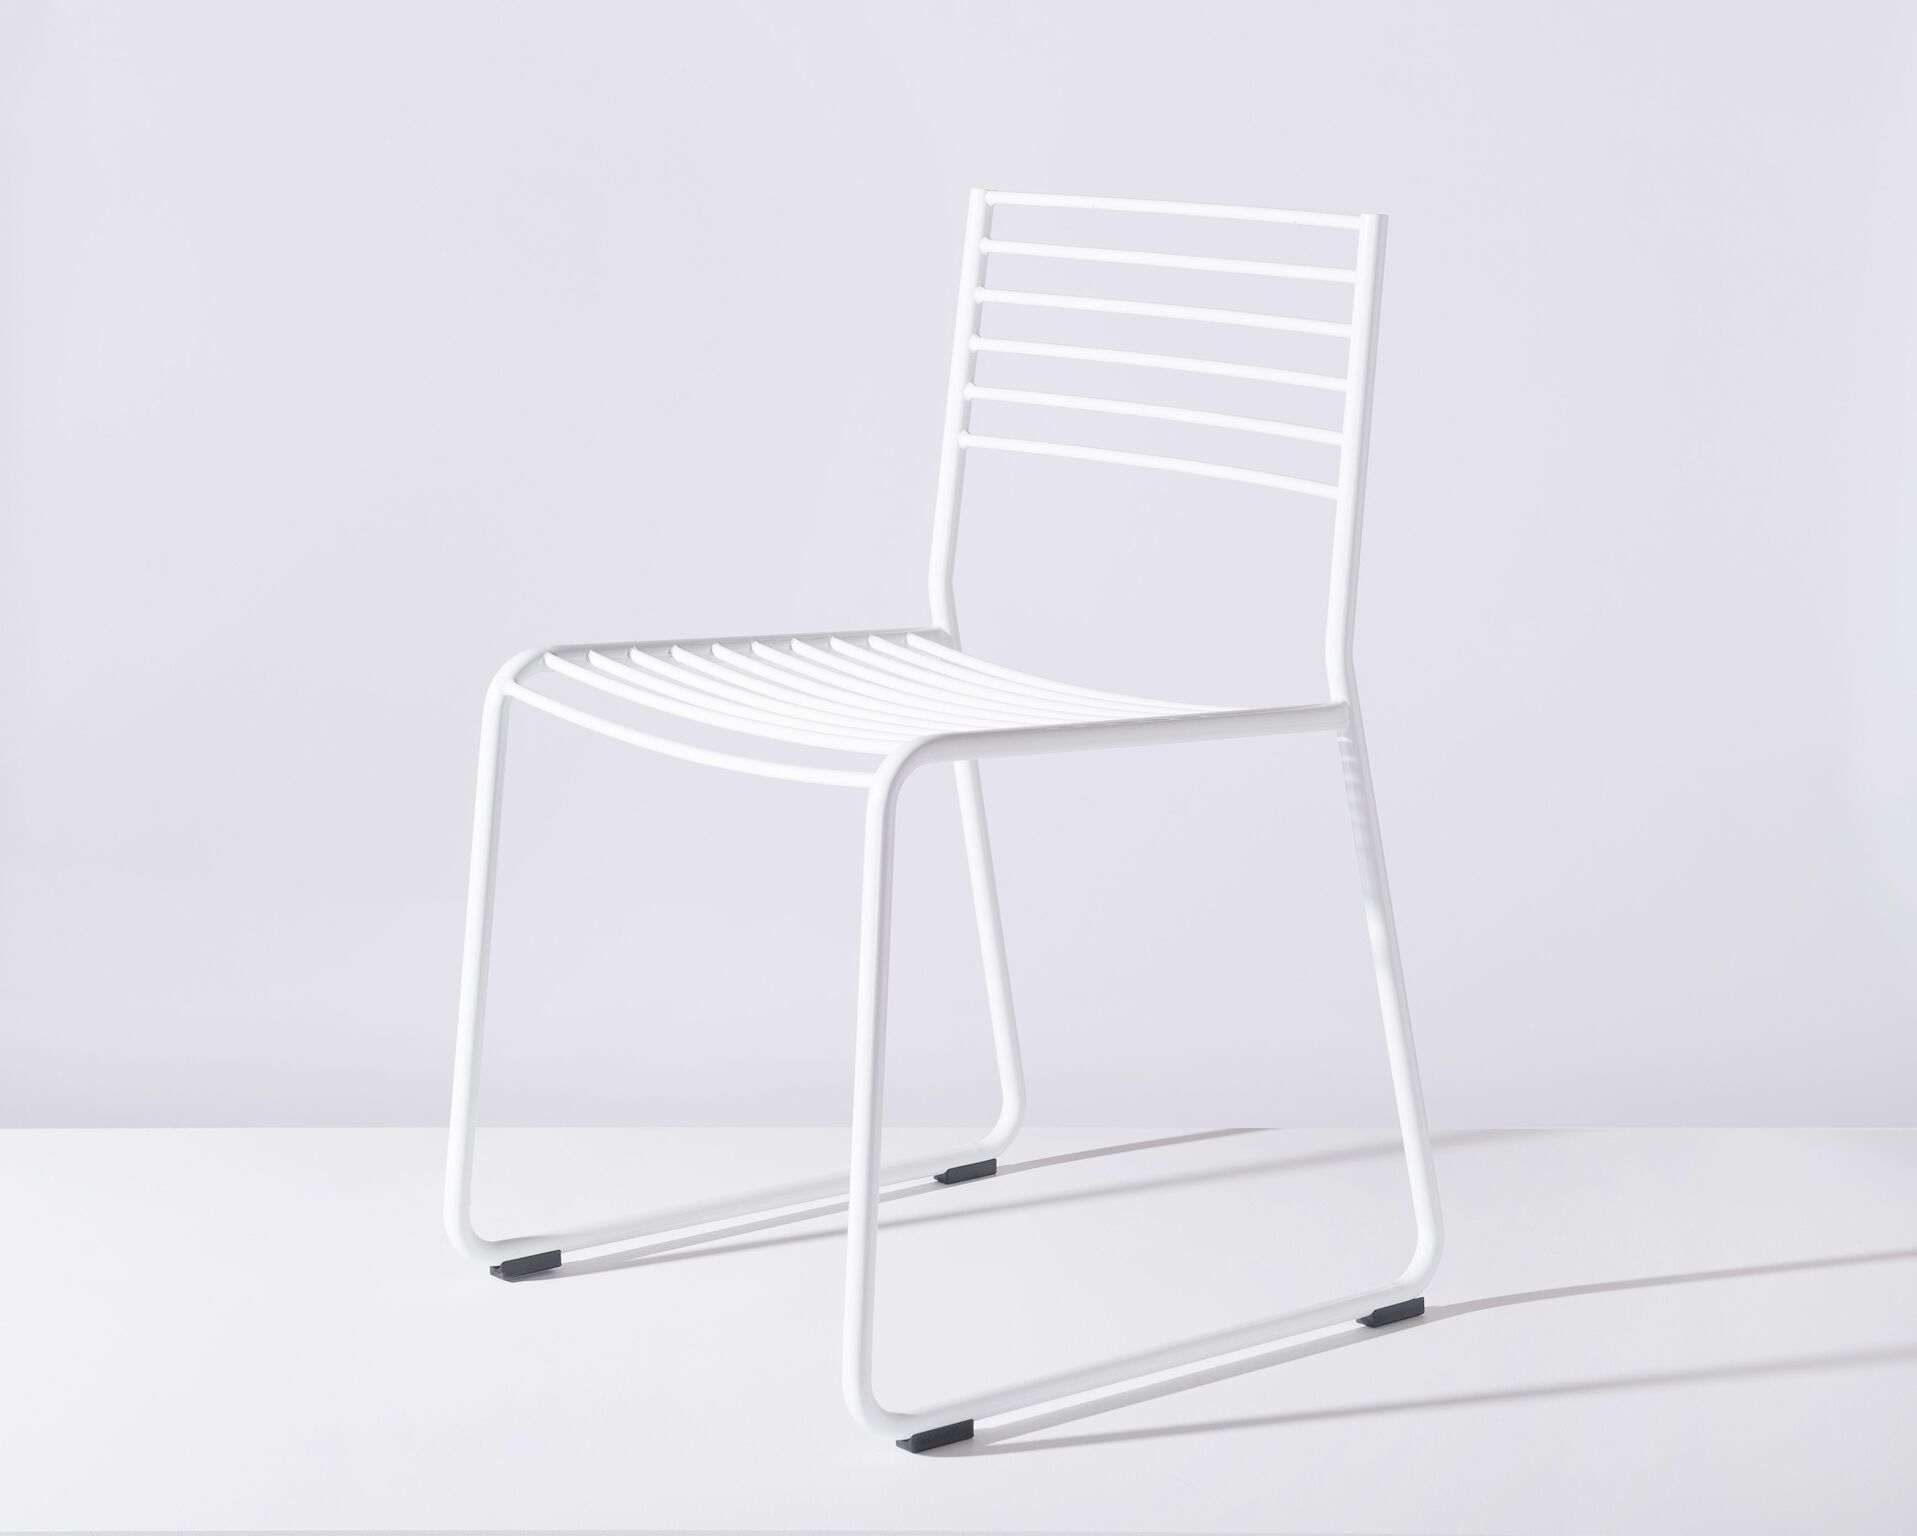 Gallery Of Tbc Wire Chair By Studio Of Adam Lynch Local Australian Furniture Design Preston, Melbourne Image 2